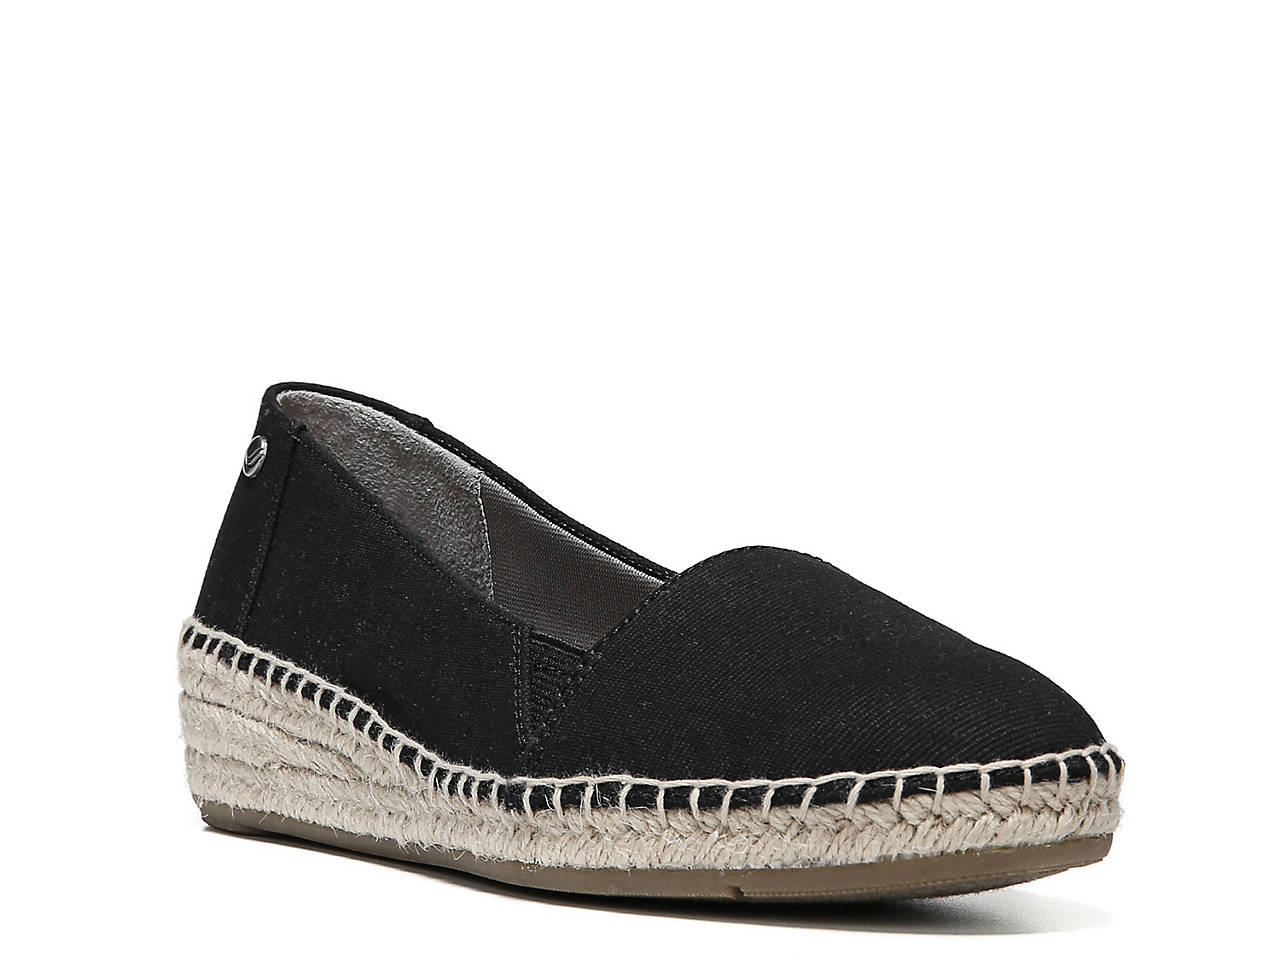 LifeStride Robust Women's ... Espadrille Wedges outlet shopping online buy cheap footlocker pictures clearance reliable PZHxrLCHDv